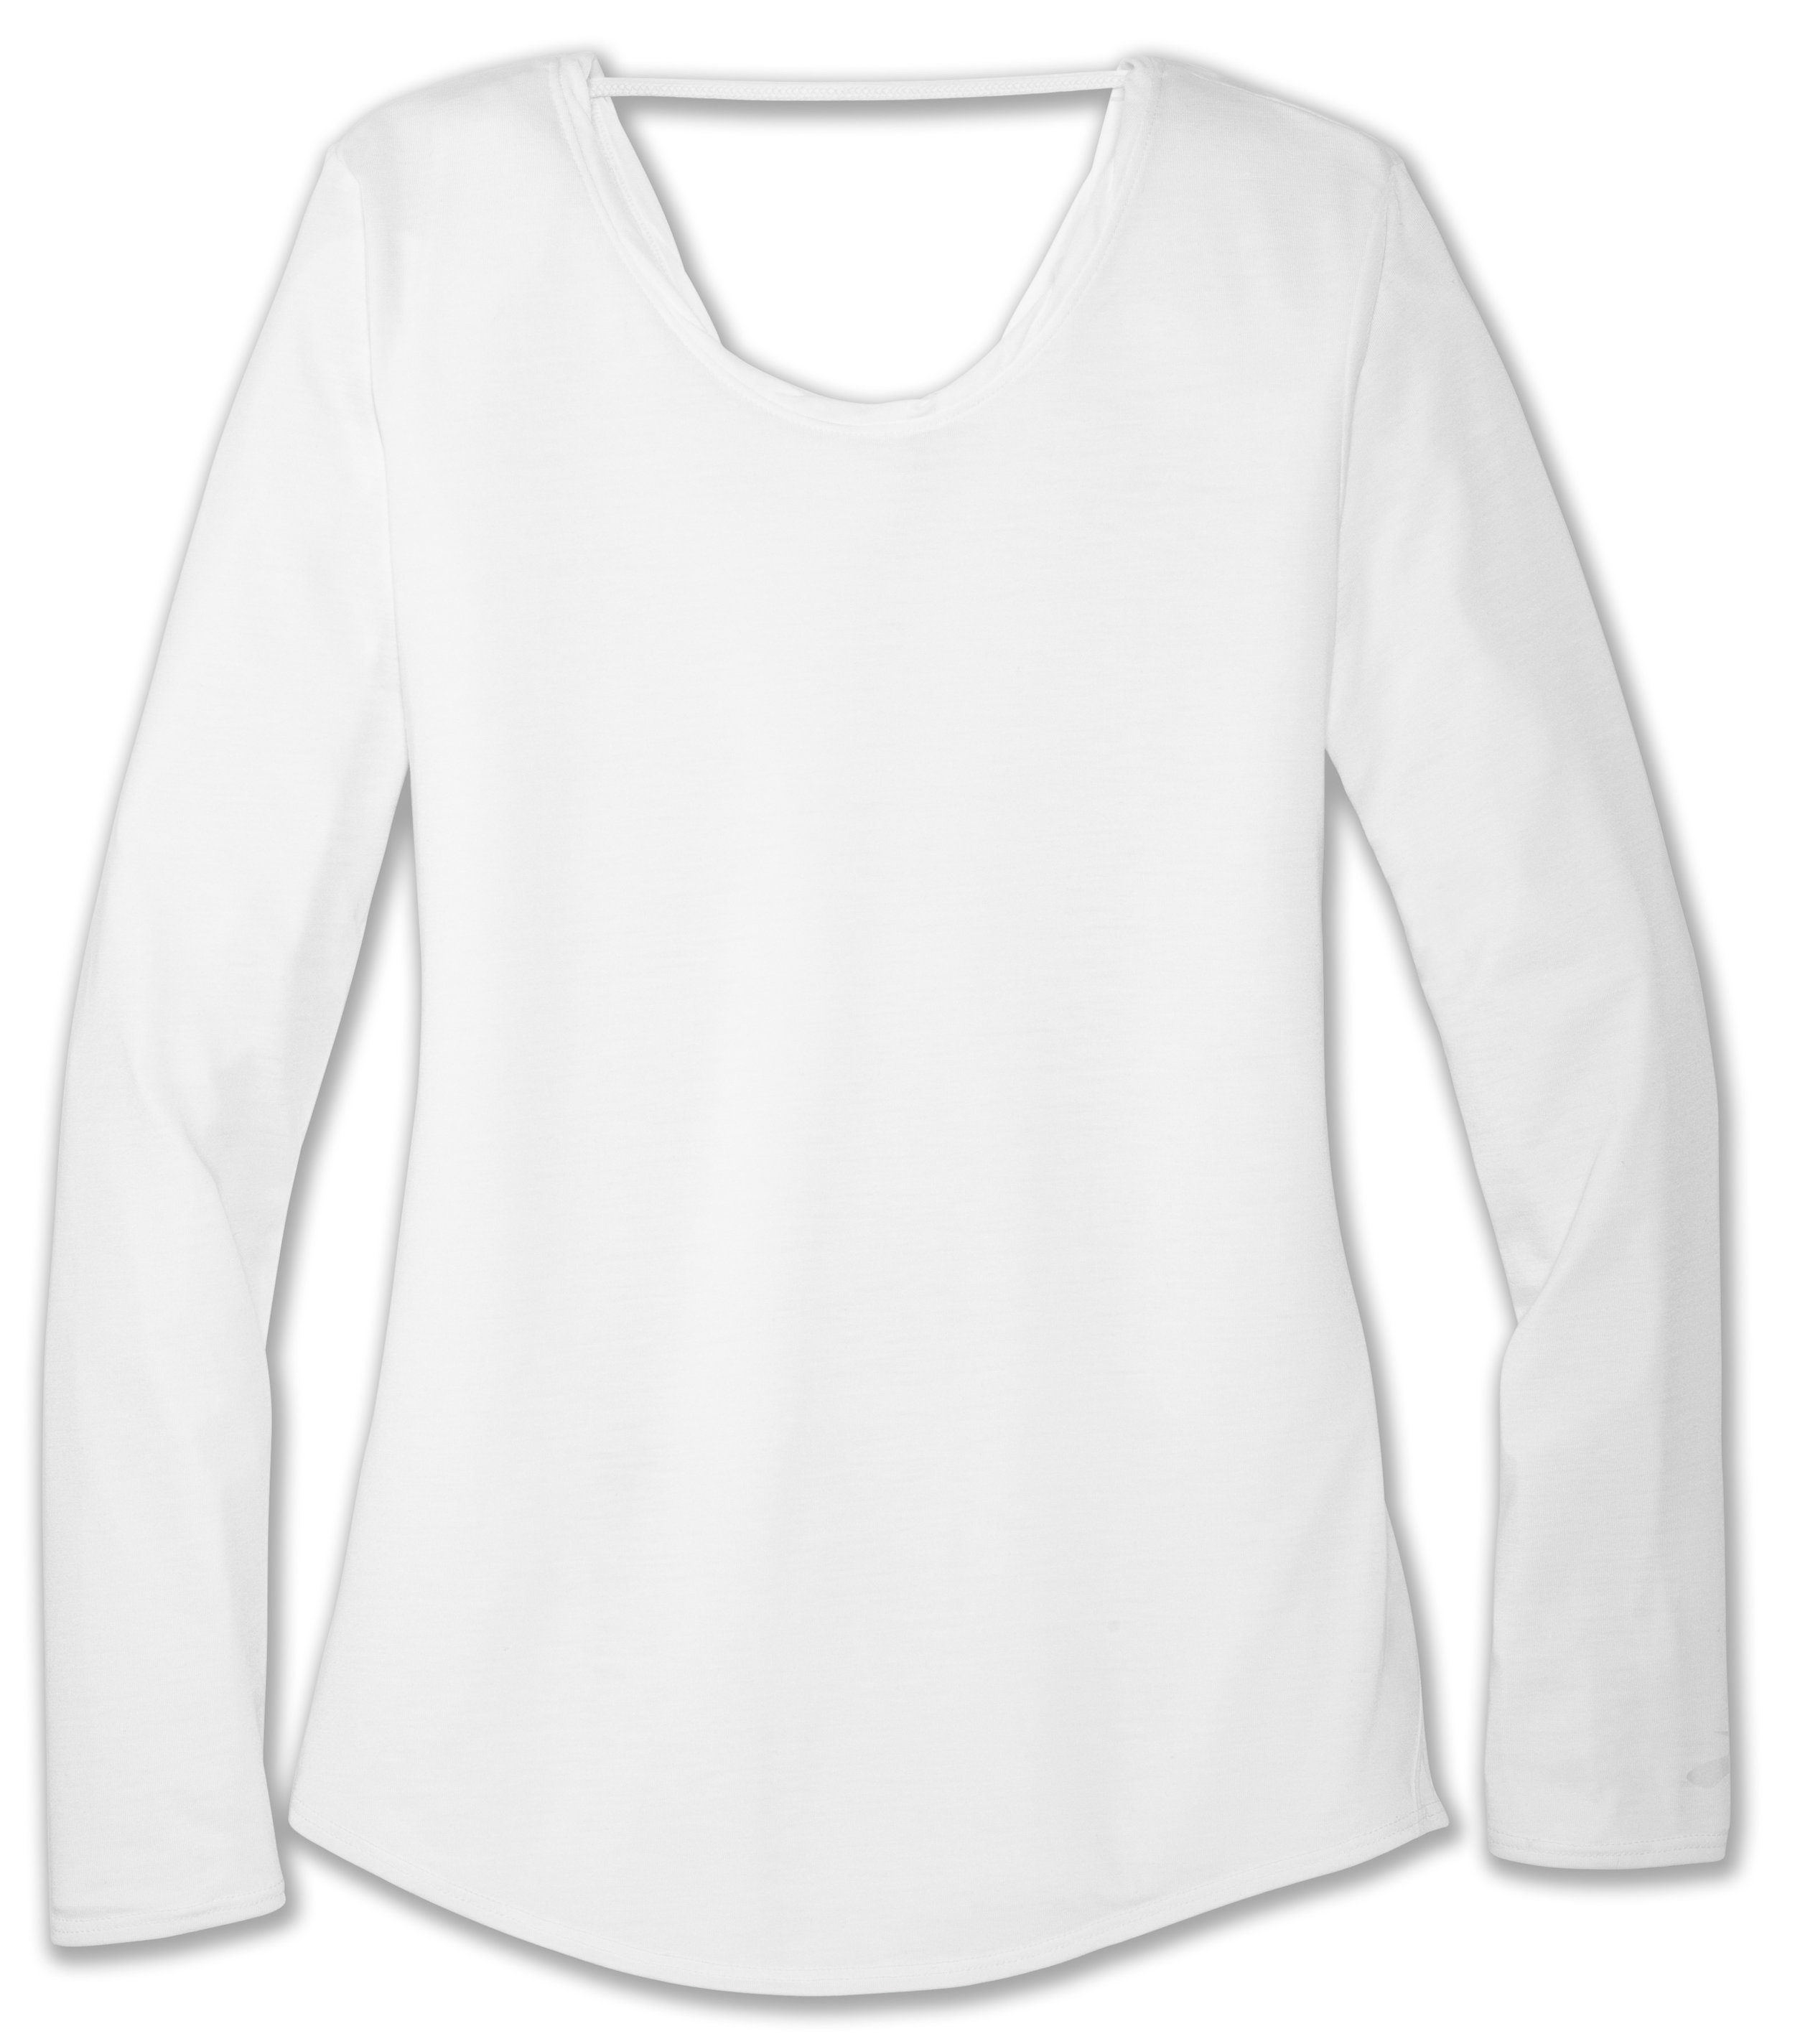 221343_100_f_Distance_Long_Sleeve.jpg